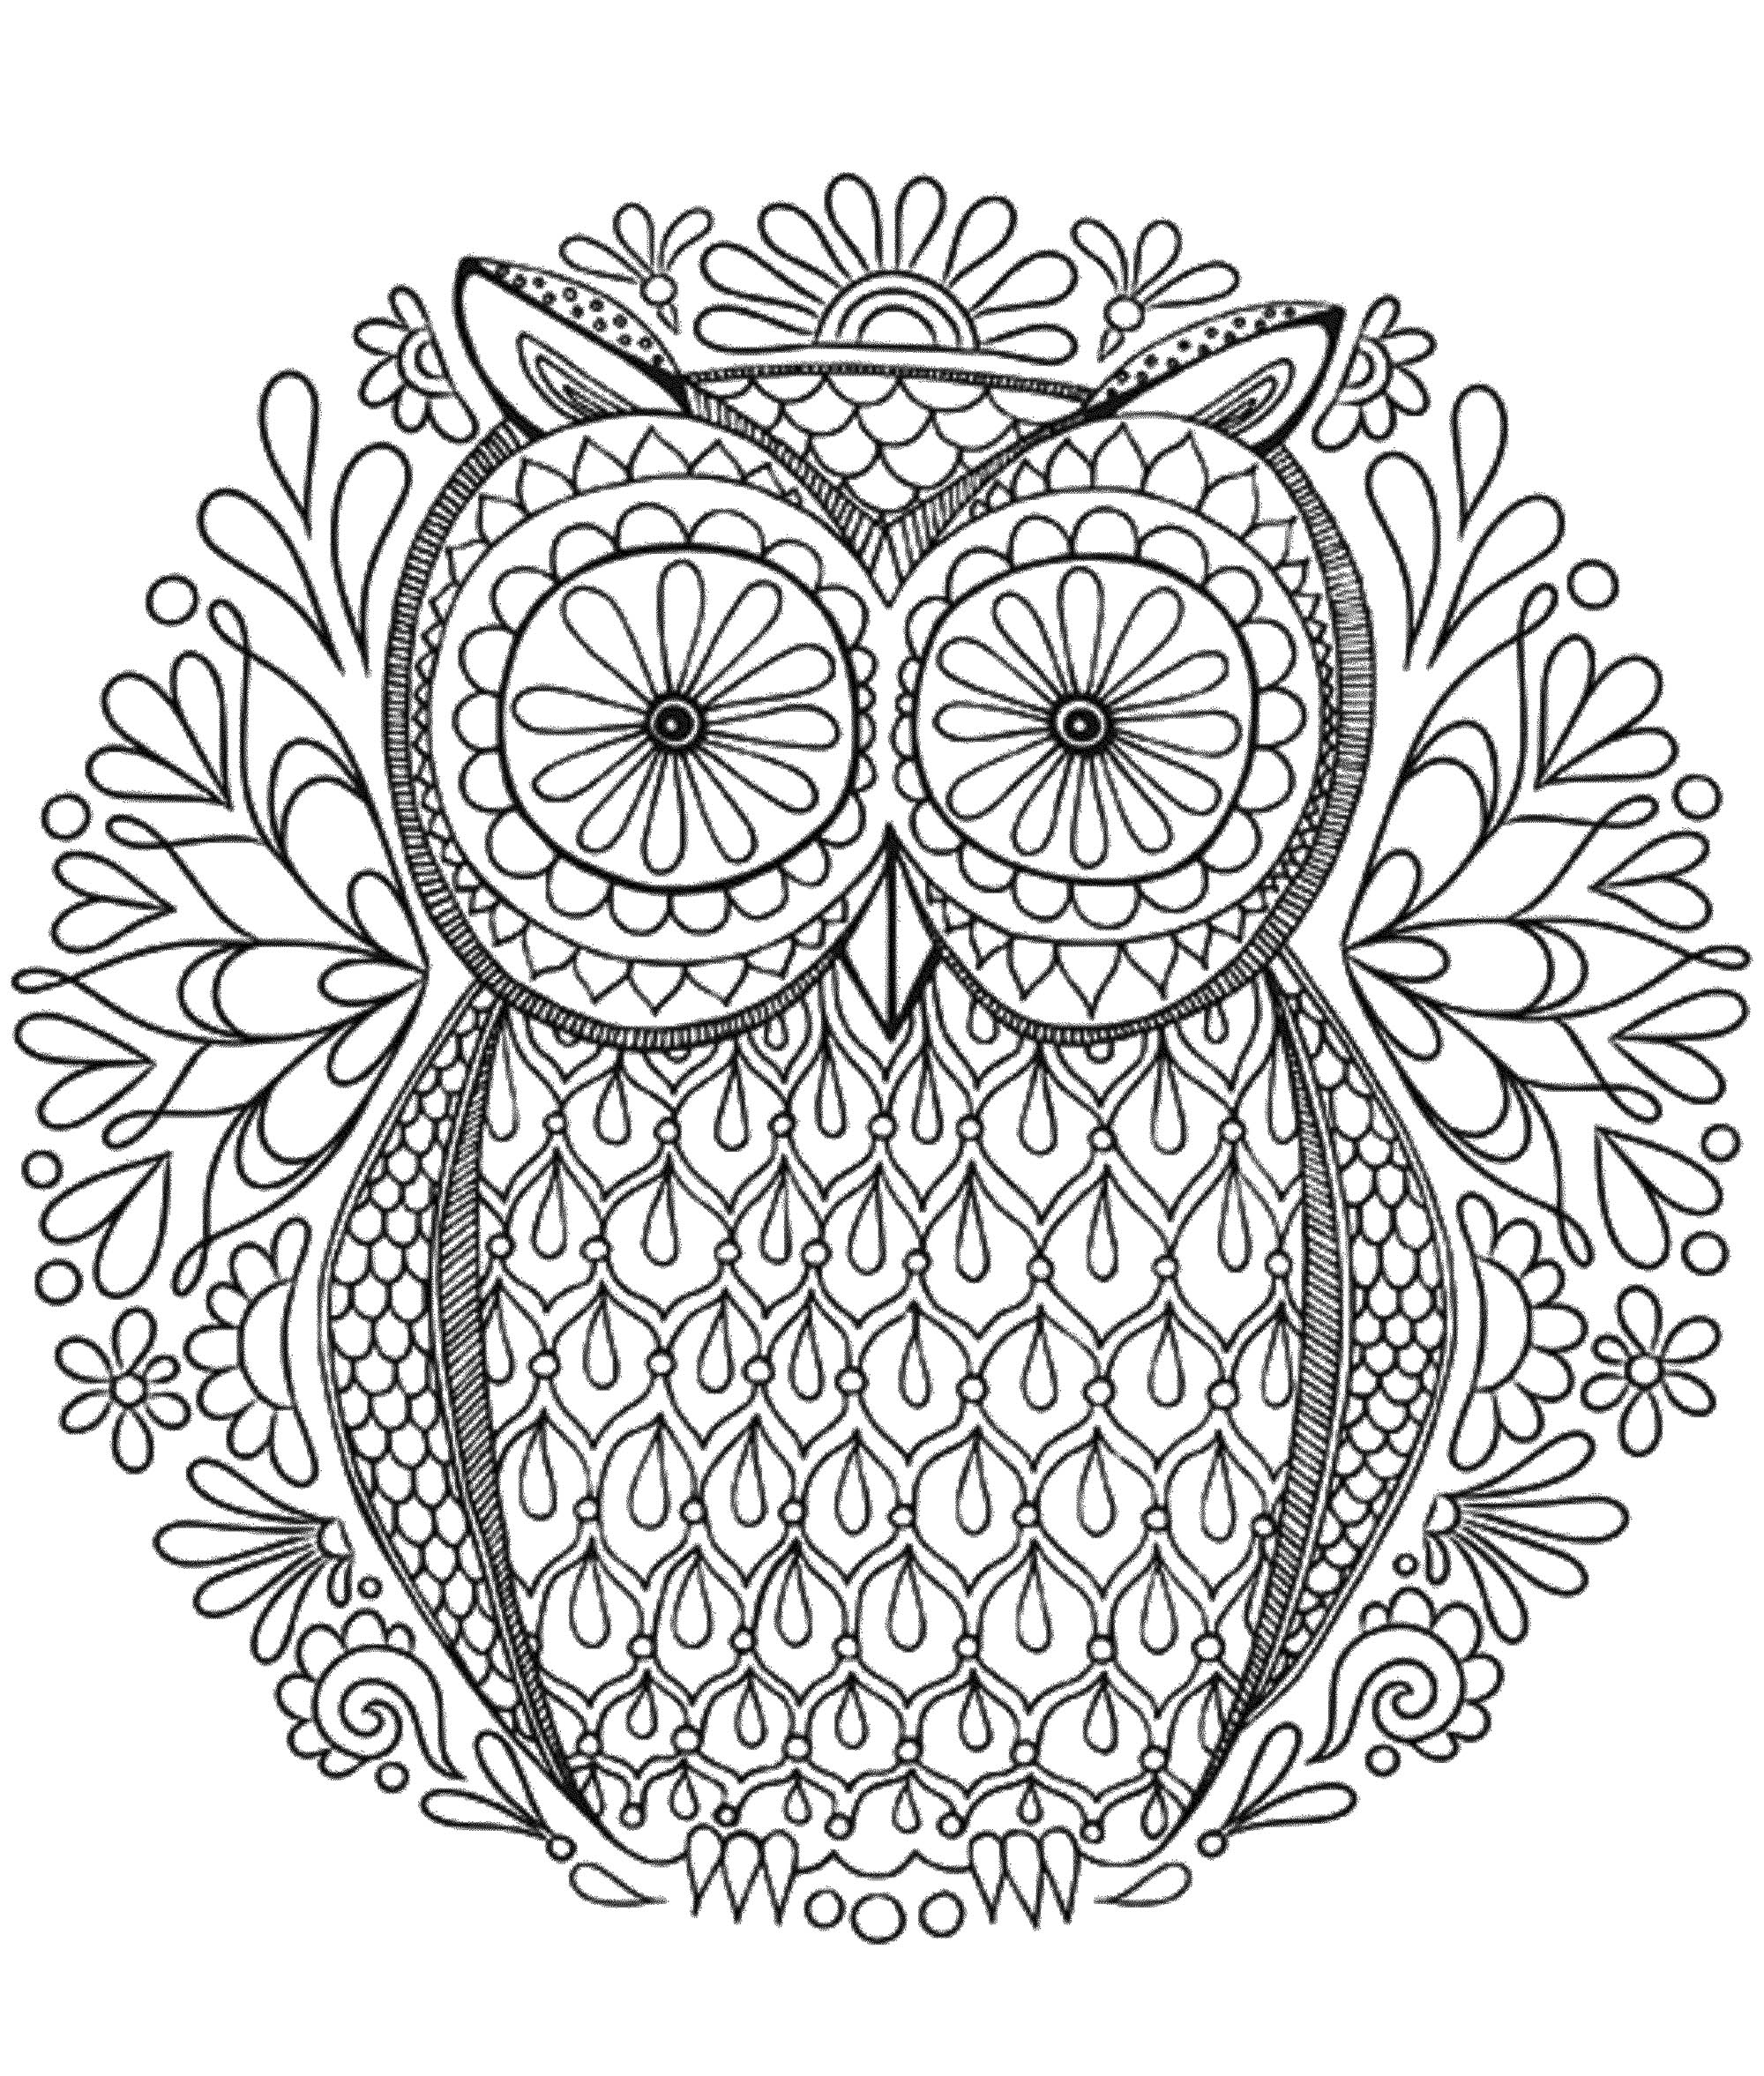 Mandala to download in pdf 6 - Image with : Owl | From the gallery : Mandalas